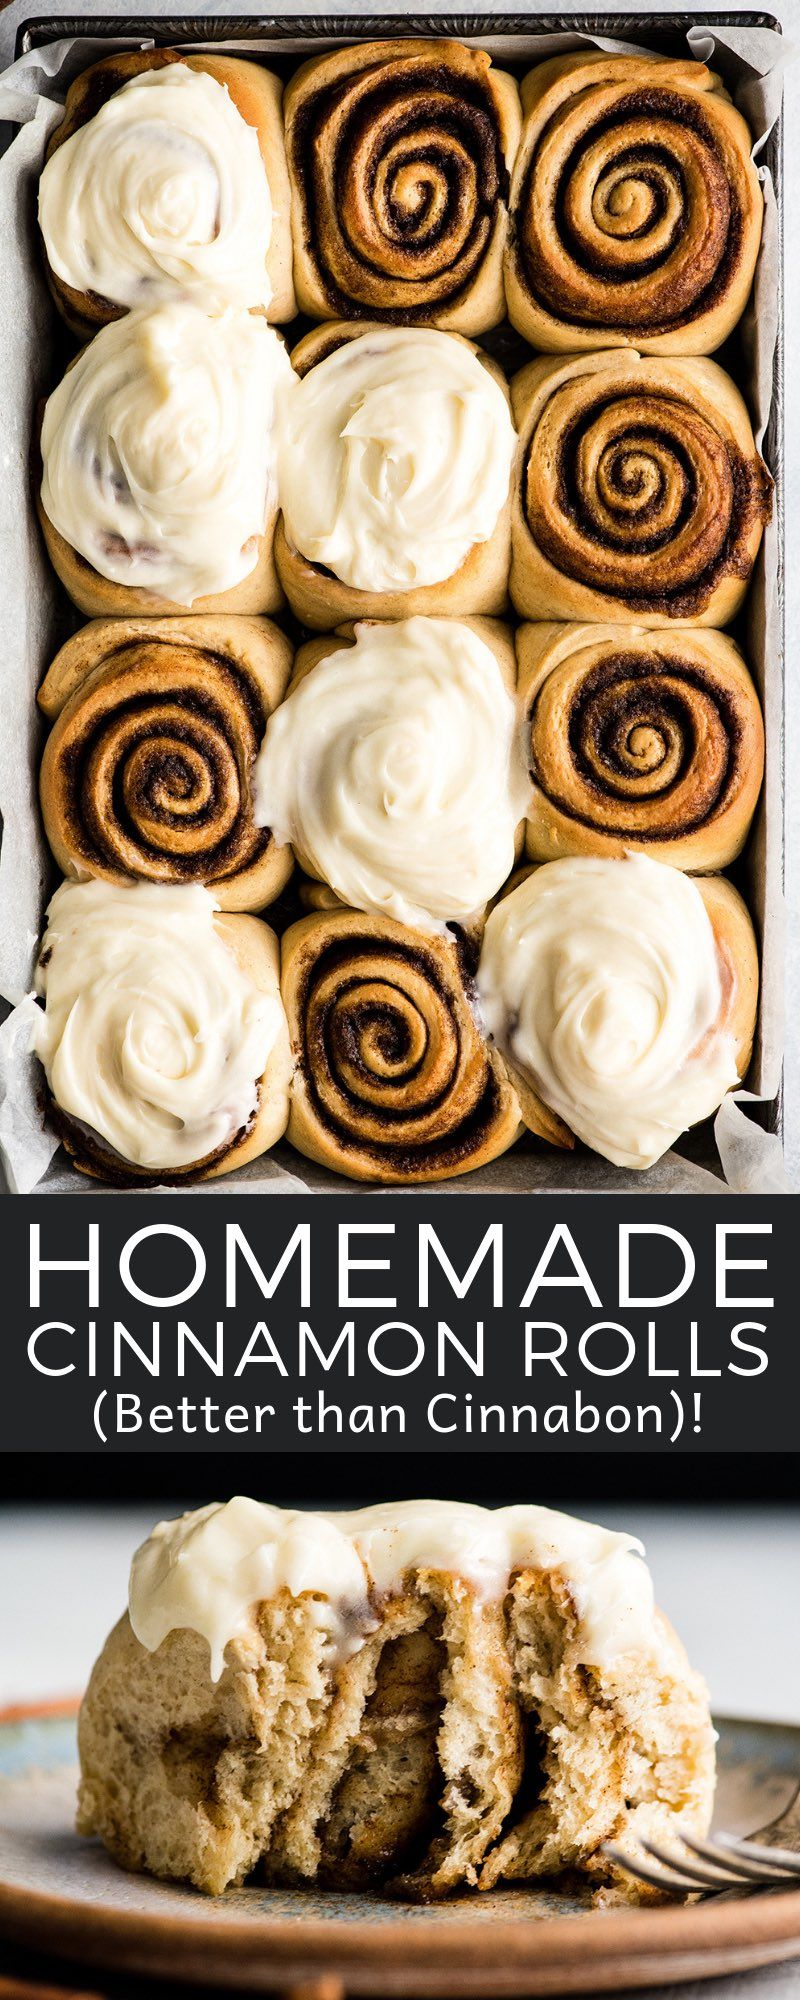 This is the Best Homemade Cinnamon Rolls Recipe EVER! These gooey cinnamon rolls are even better than Cinnabon cinnamon rolls, and are topped with the best cream cheese frosting! They're easy to make and can be prepared the day before and left to rise overnight in the refrigerator.